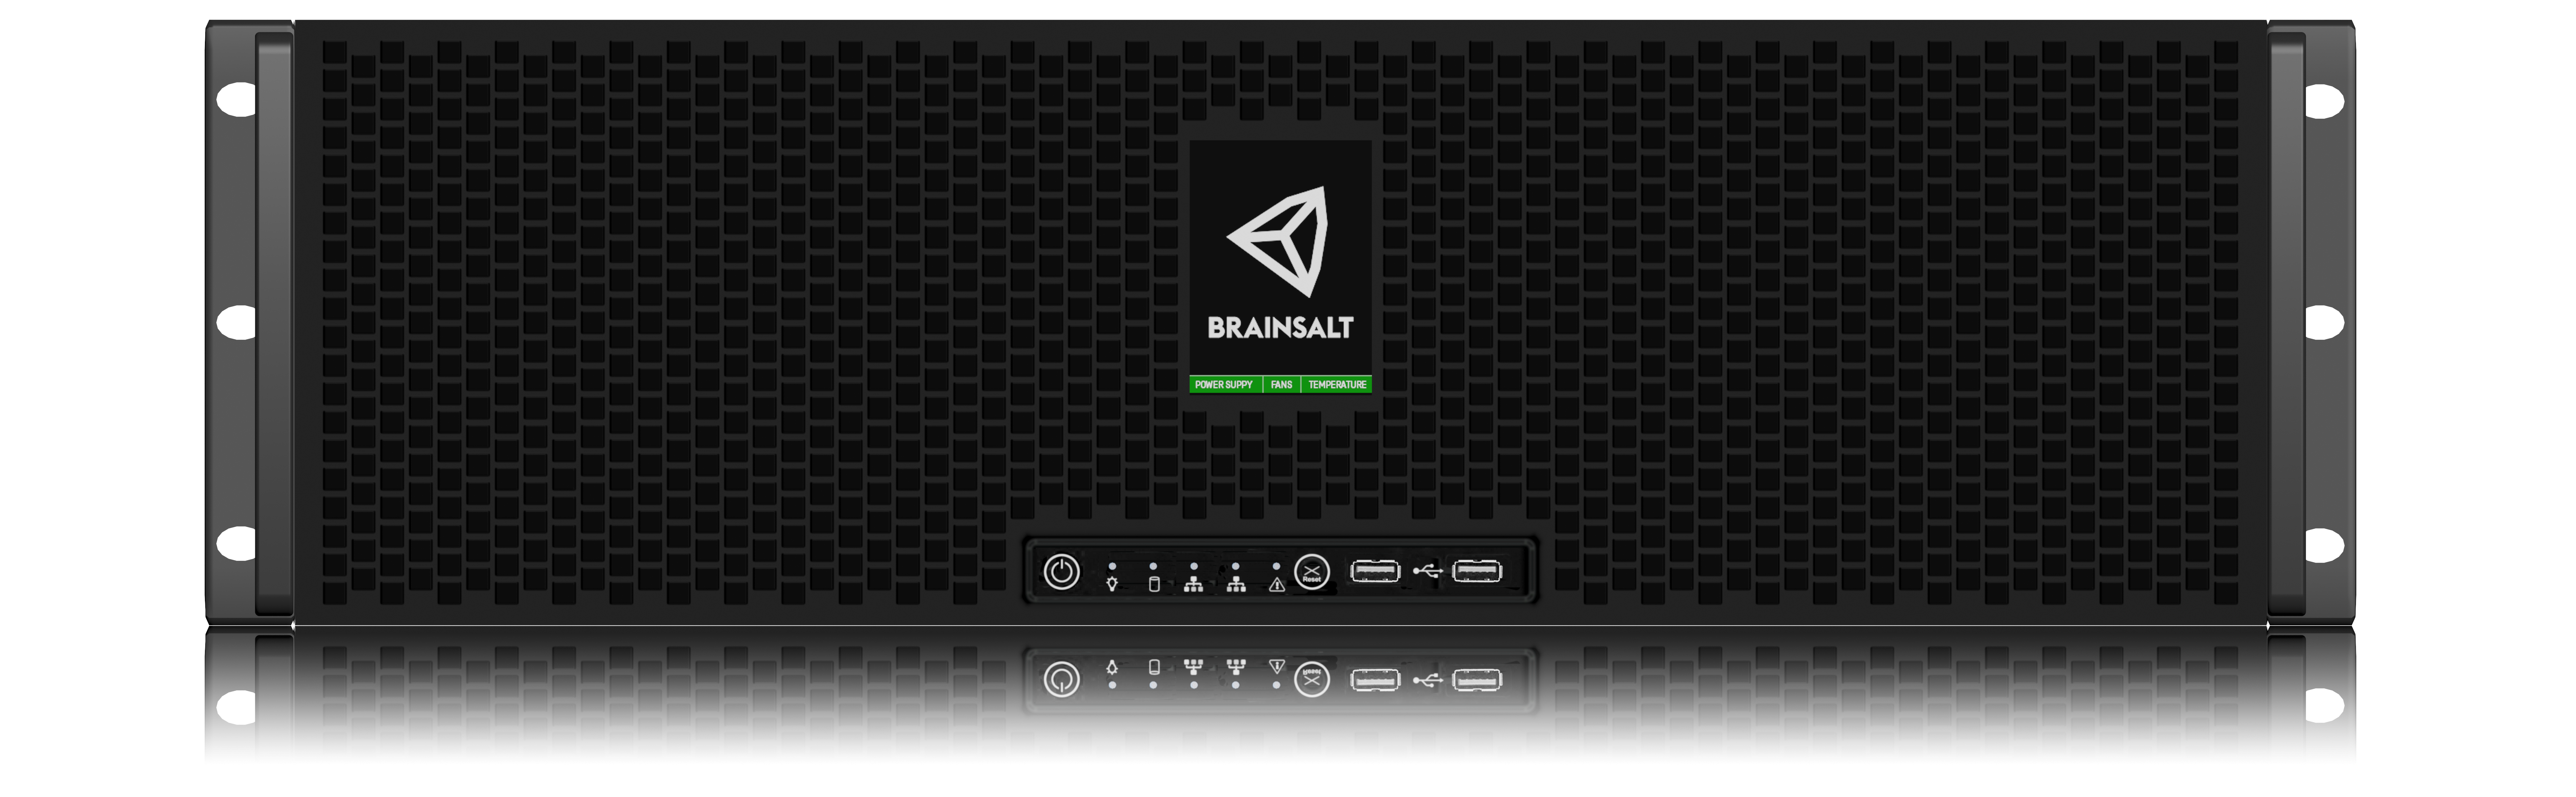 Brainsalt B7 Series Video Server